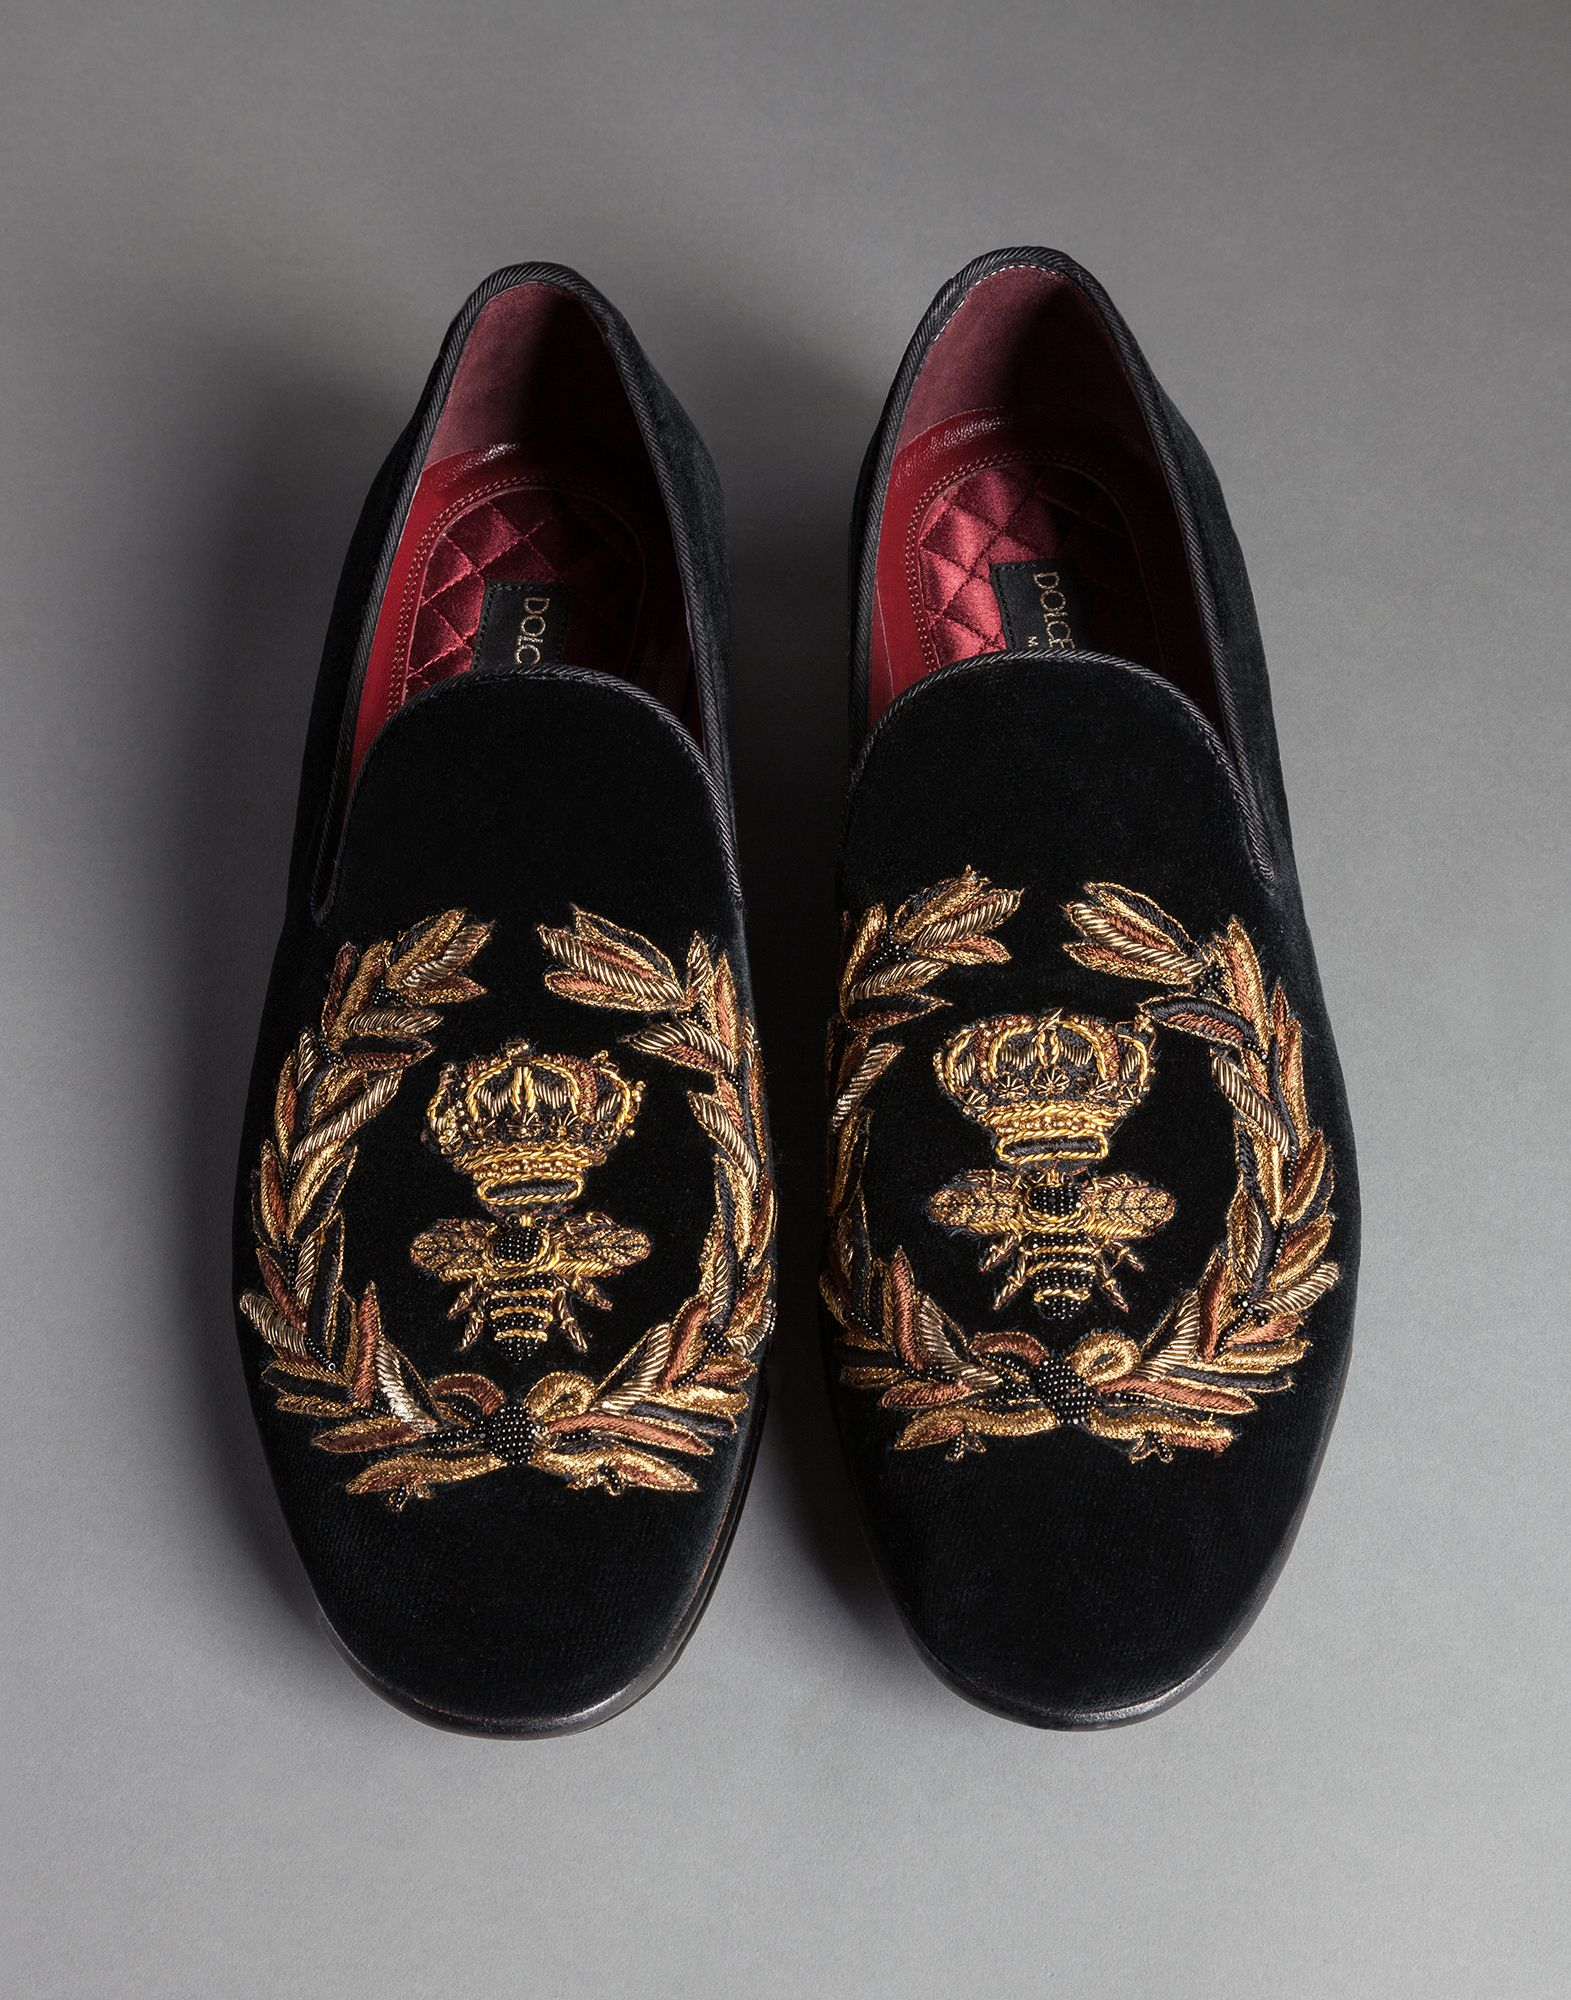 discount pre order free shipping find great Dolce & Gabbana Milano embroidered slippers QUOaXJ